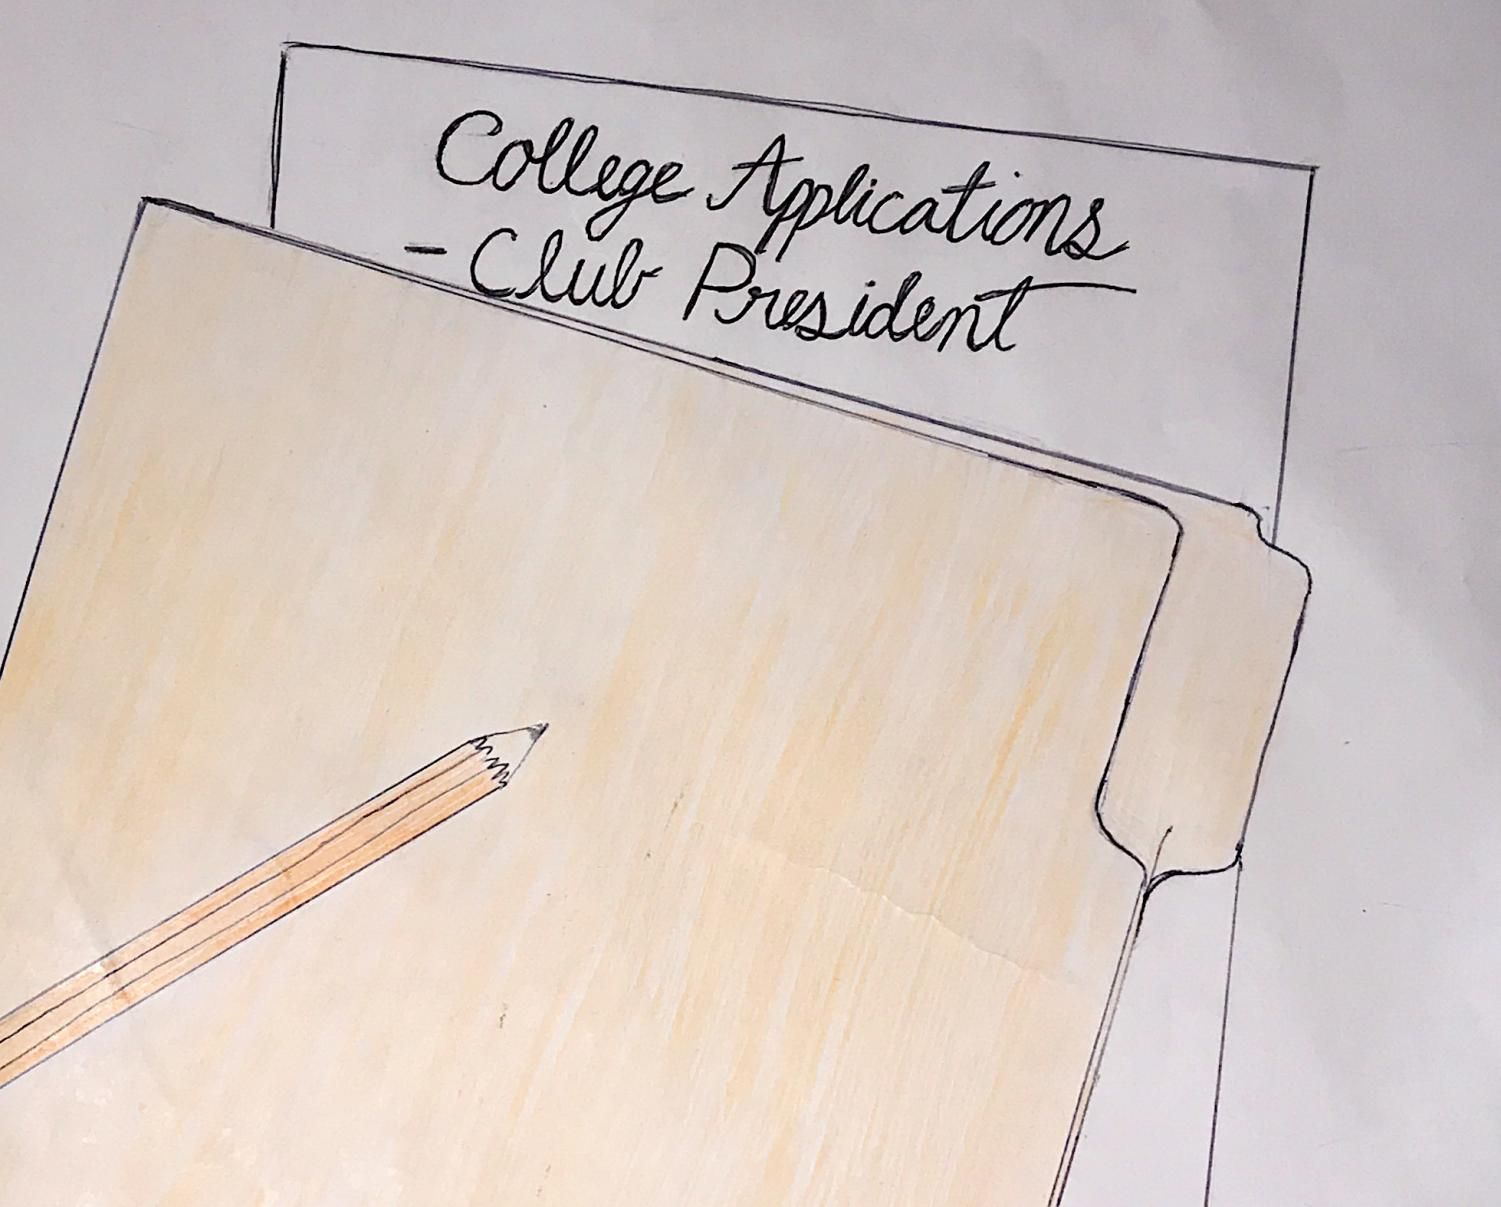 Students list their accomplishments for college applications, one possibly being the title of club president.